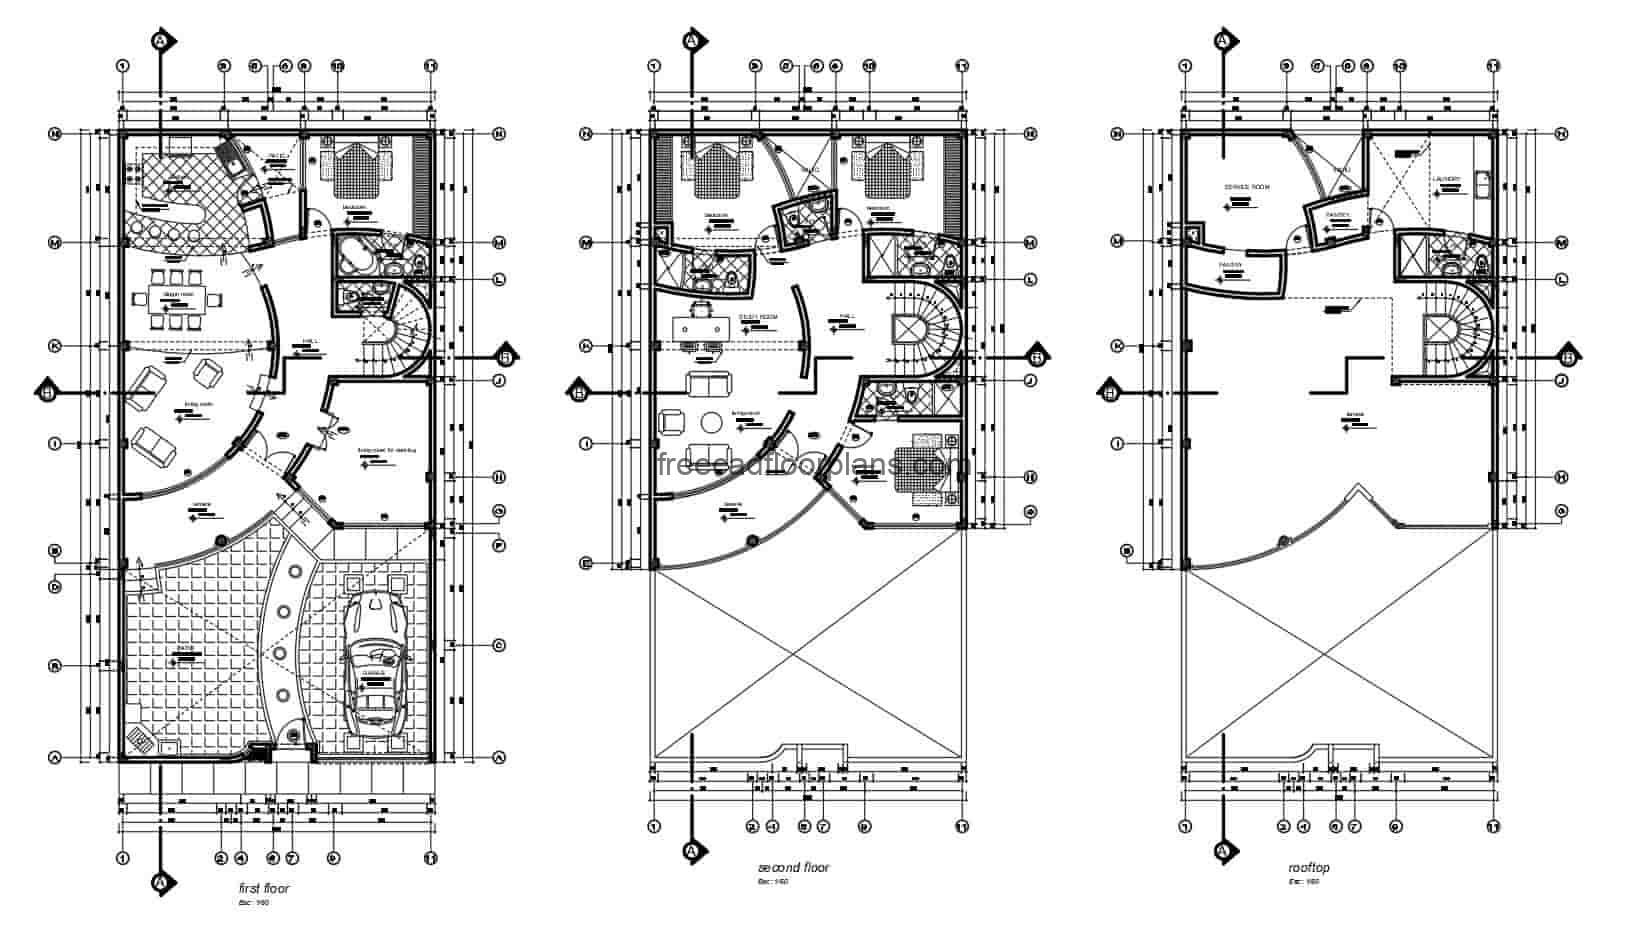 2D plans in DWG format of Autocad residence of two levels with three rooms in the second level and room of service in the first level, rectangular distribution with curved interior walls. CAD plans for free download, architectural plan, dimensioning, sections and elevations, complete project drawn in Autocad.